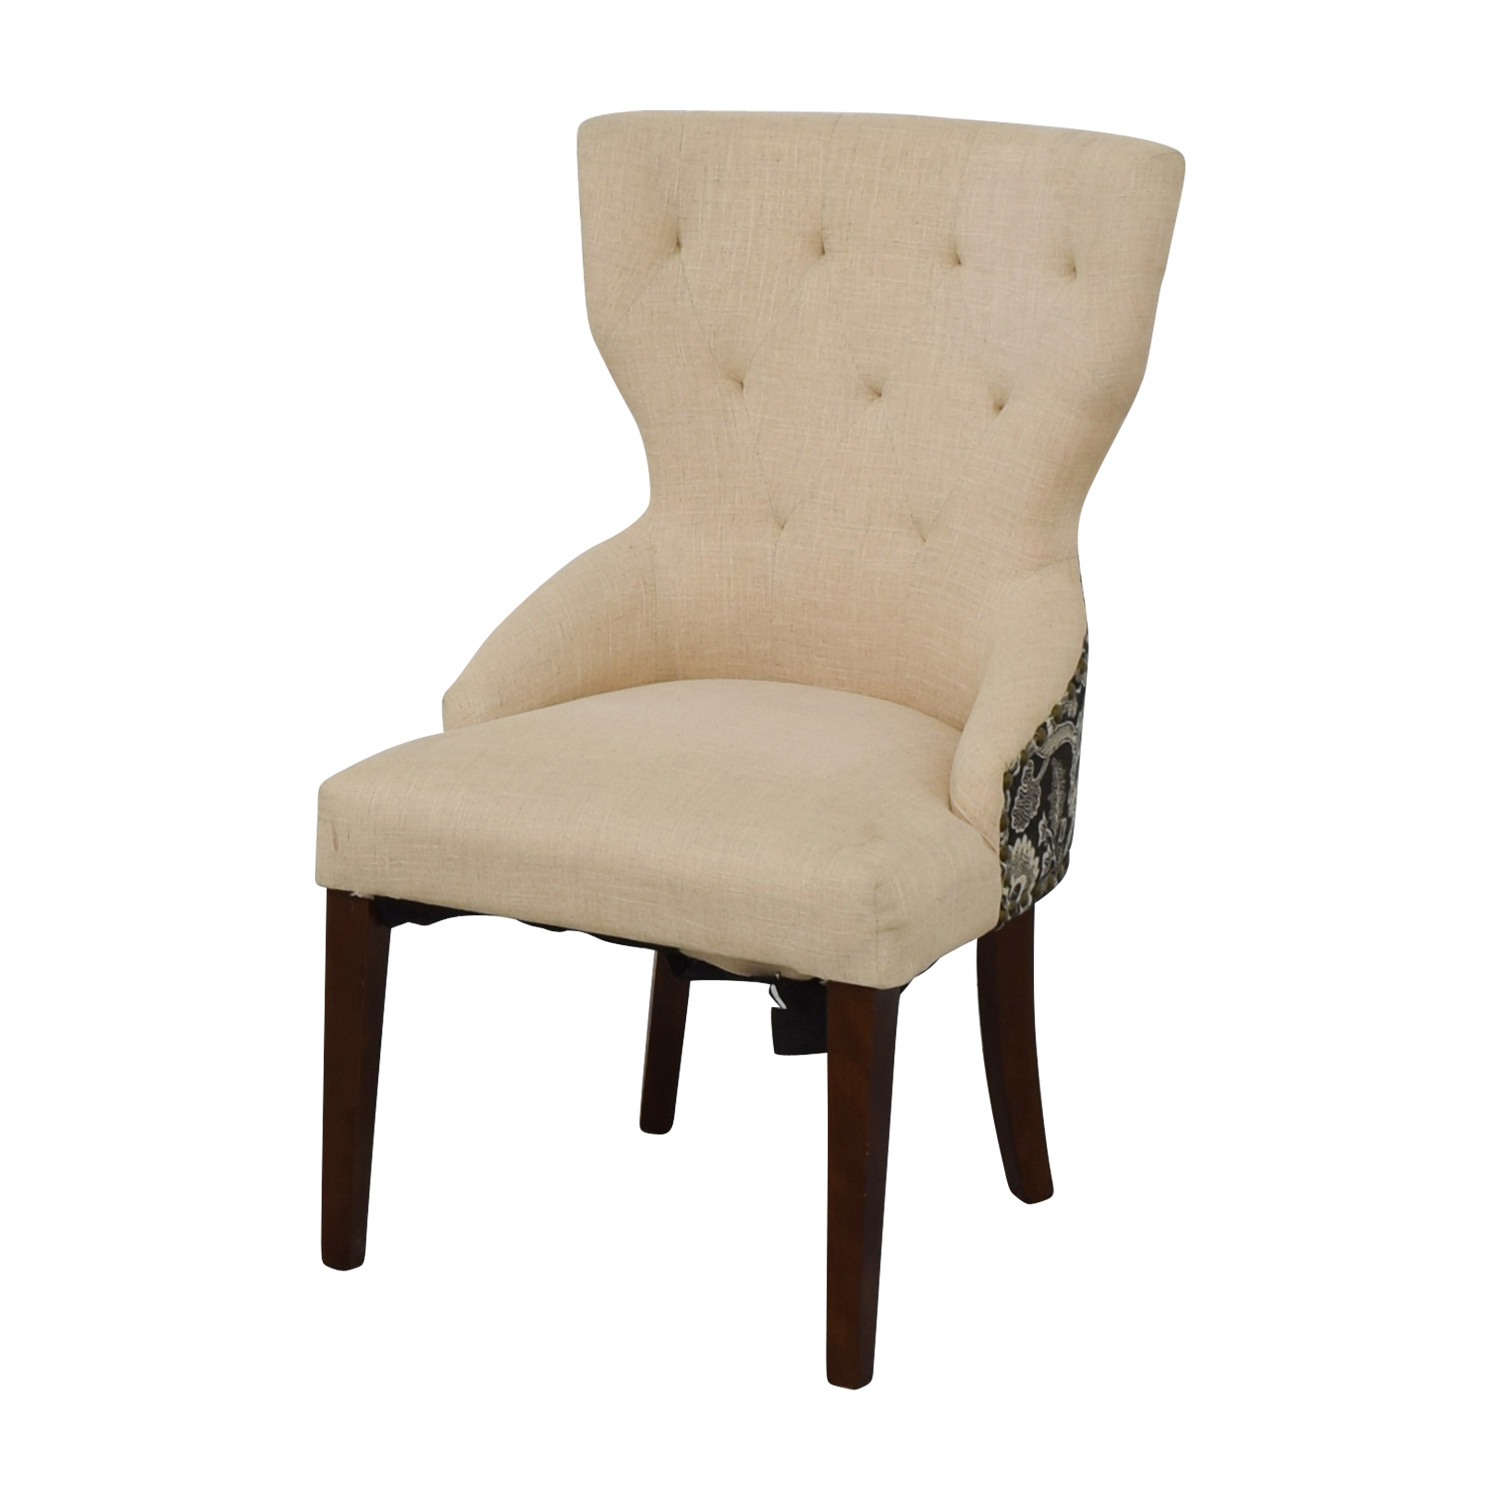 Used Wingback Chairs 68 Off World Market World Market Beige Wingback Accent